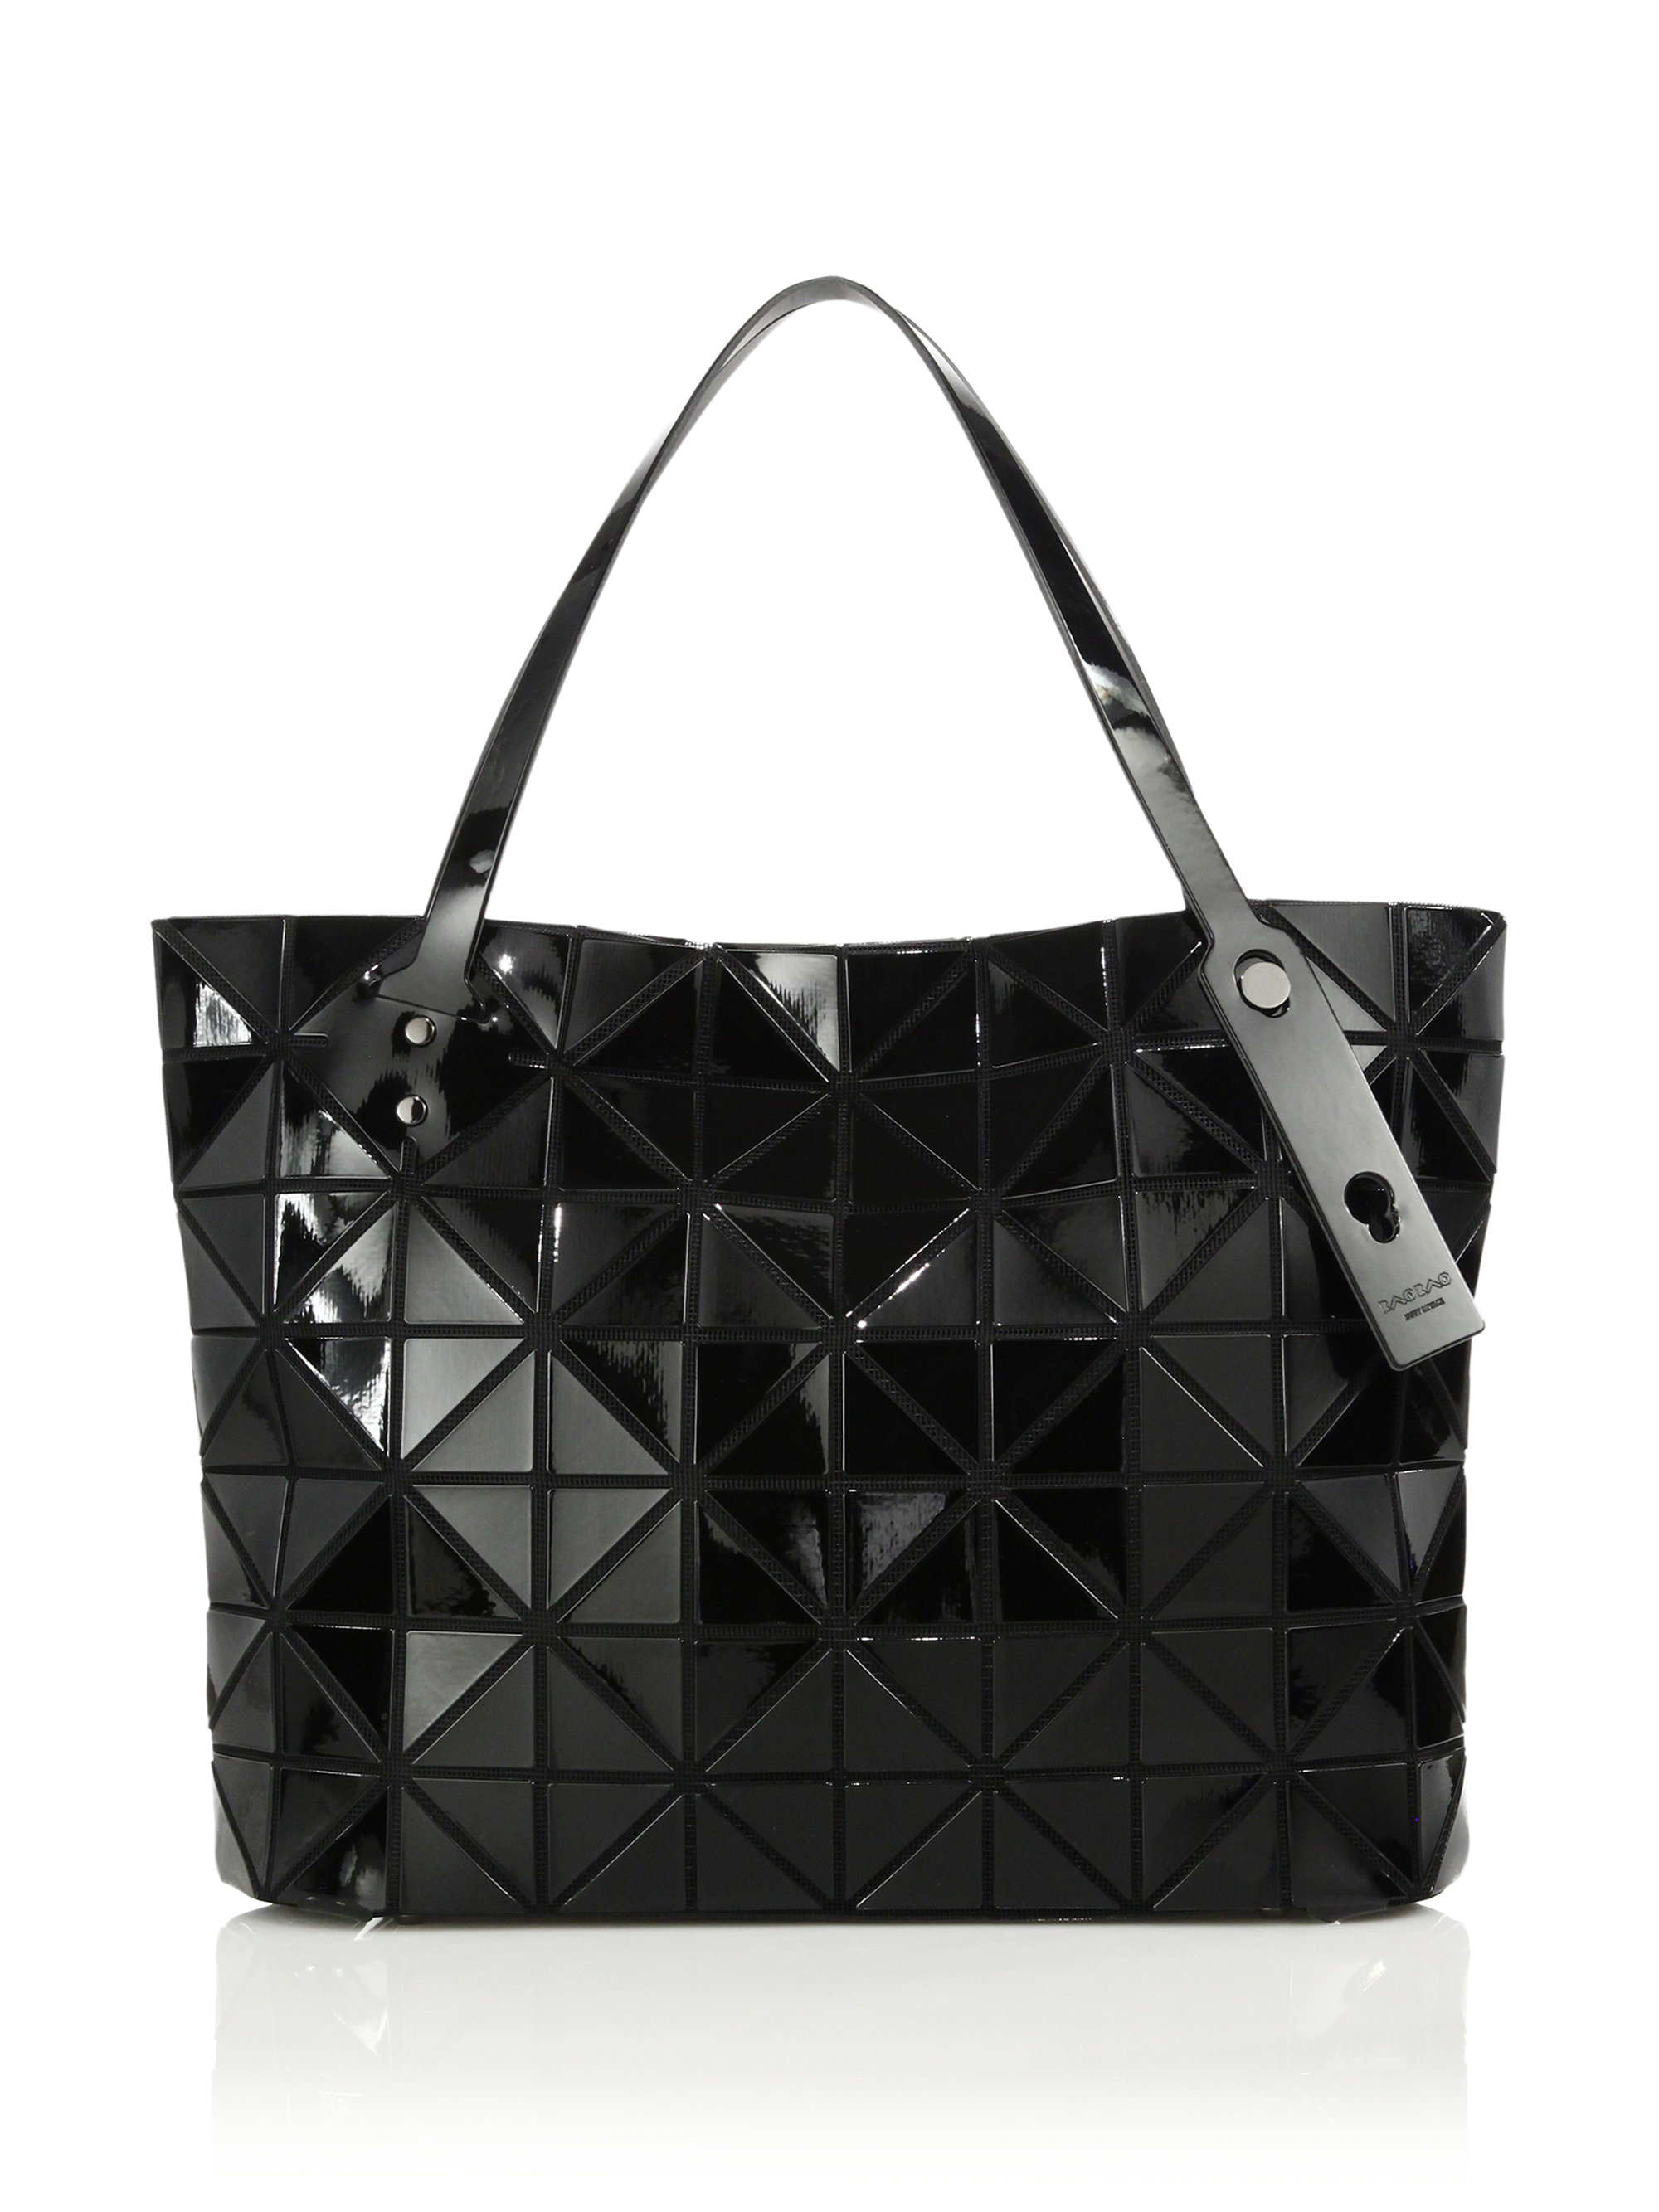 Lyst - Bao Bao Issey Miyake Rock Basic Faux Leather Tote in Black 35ca0ffb581d8